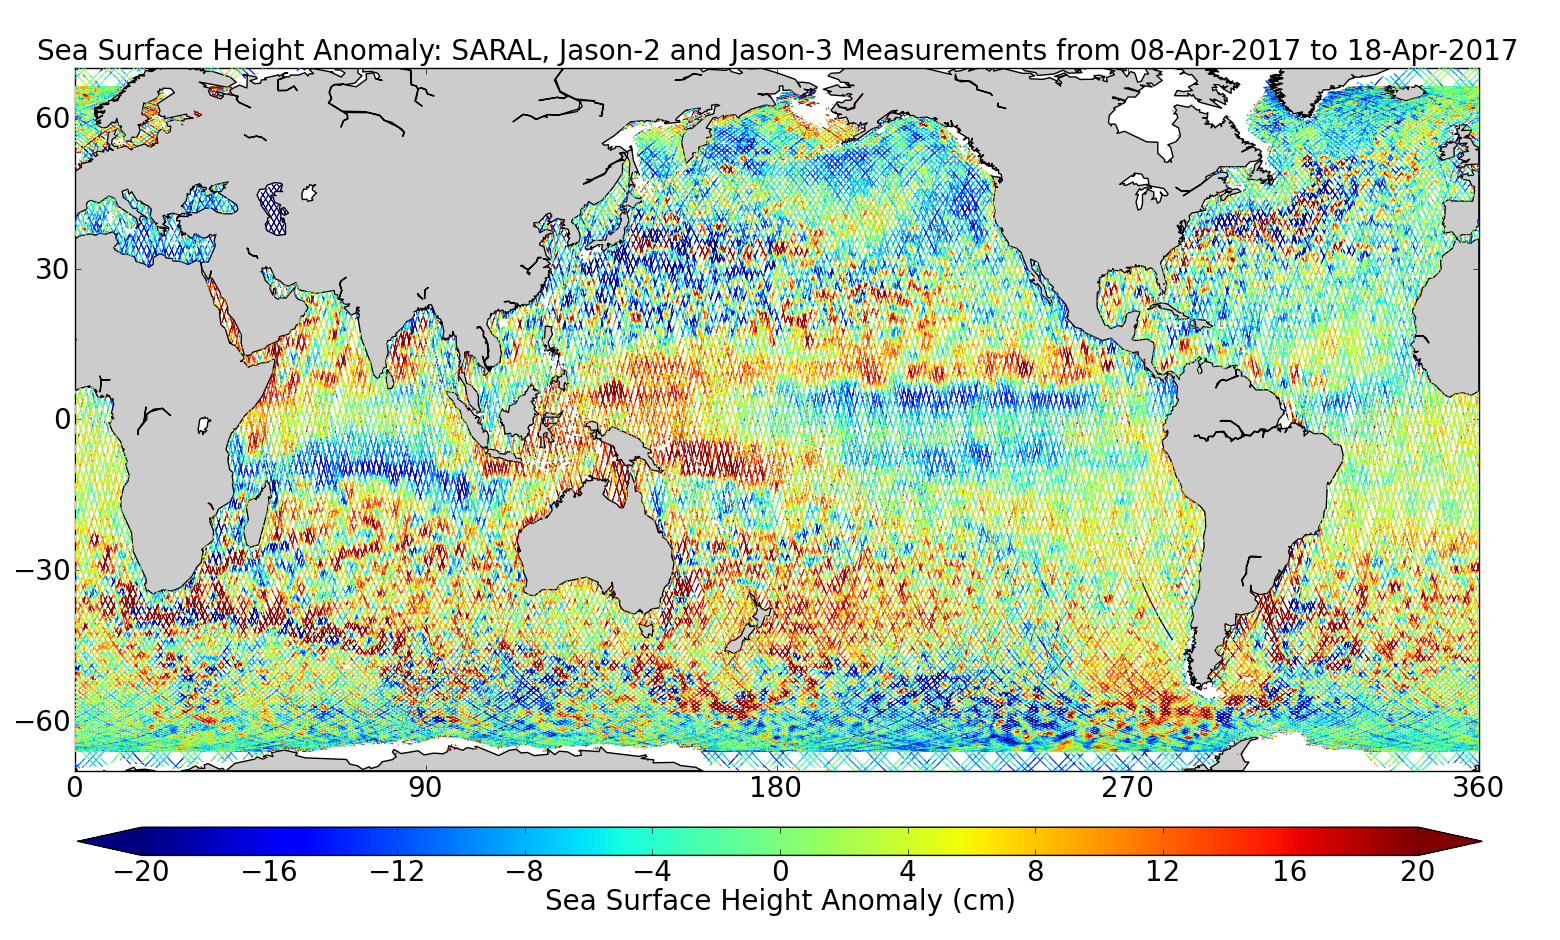 Sea Surface Height Anomaly: SARAL, Jason-2 and Jason-3 Measurements from 08-Apr-2017 to 18-Apr-2017